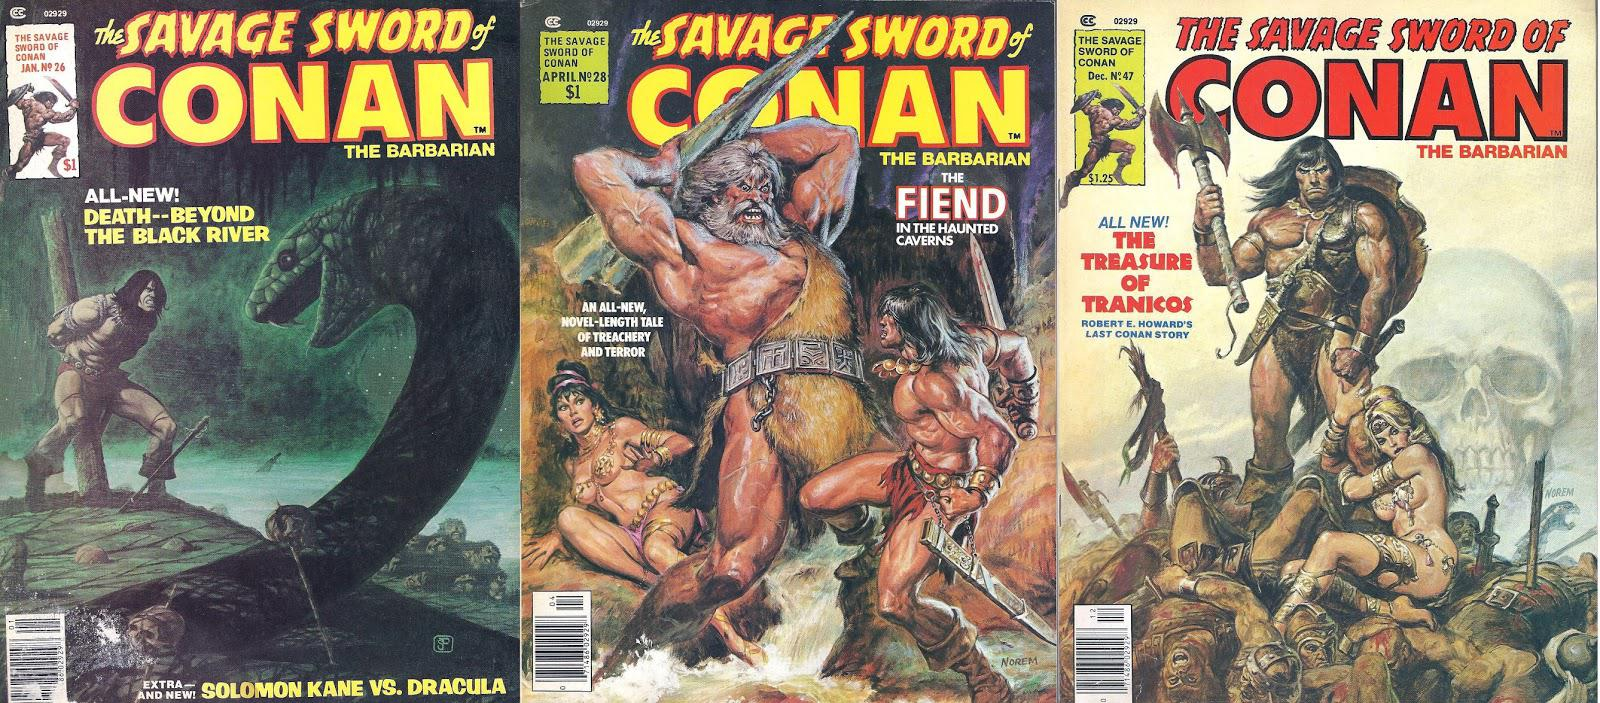 Robert E Howard - Conan : L'intégrale 8 volumes